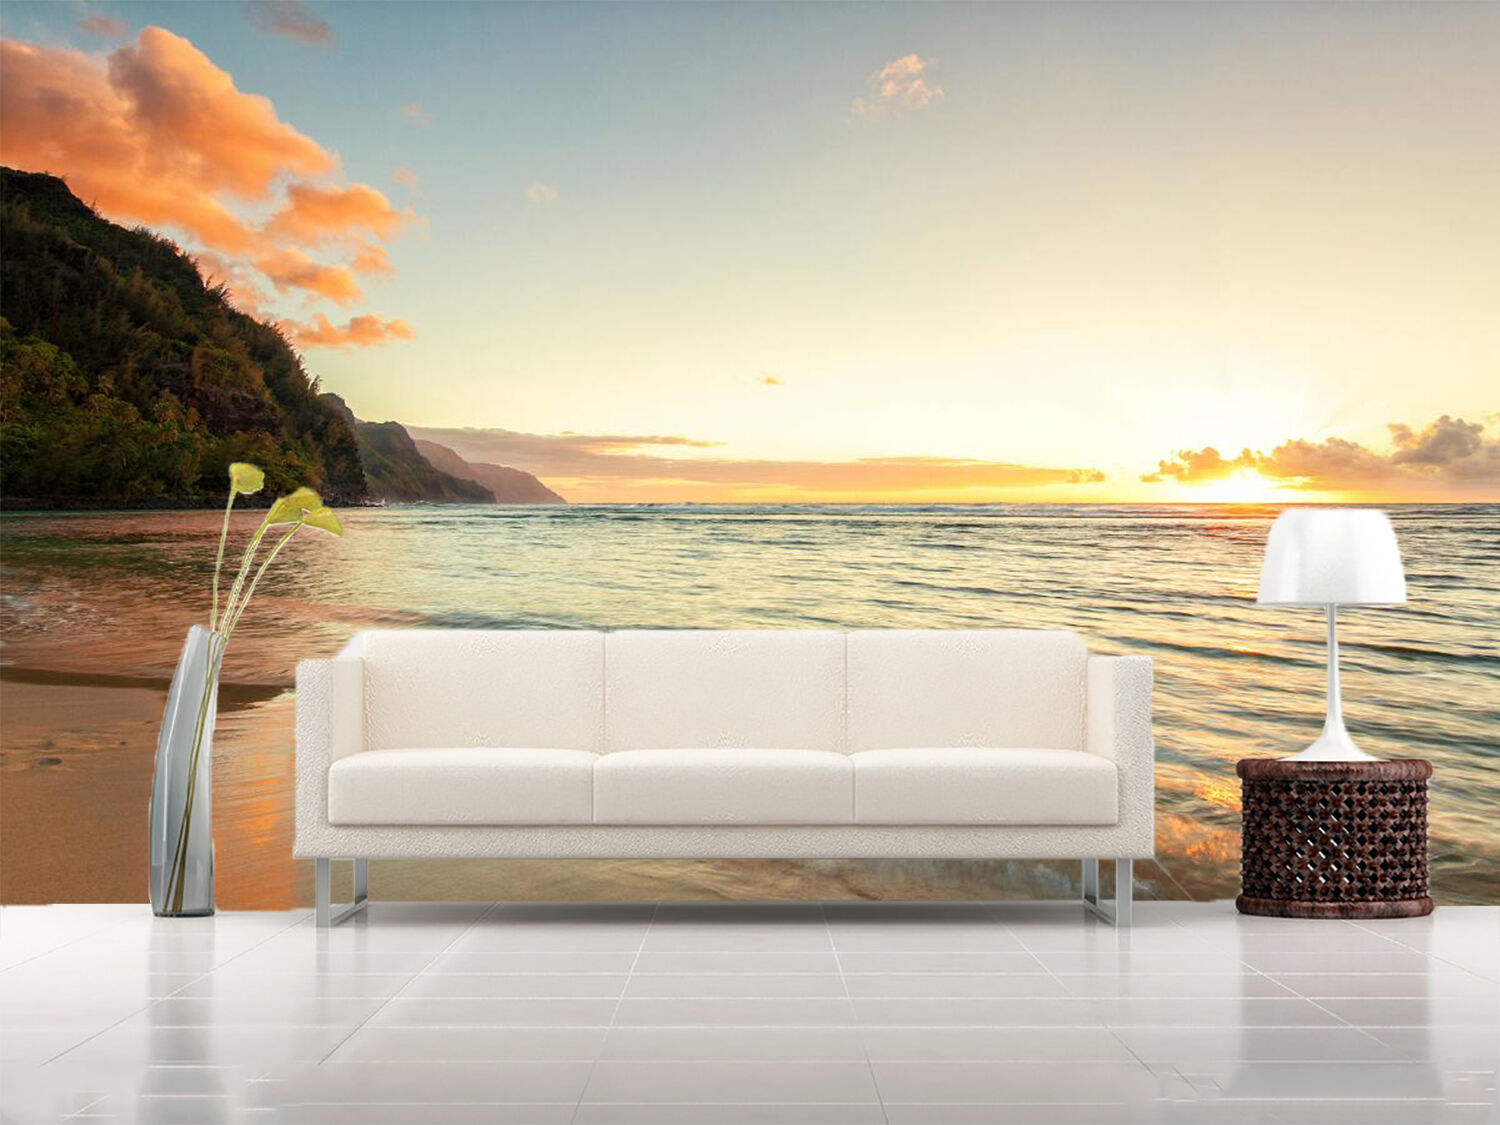 3D Sunrise Seaside Beach 4589 Wall Paper Wall Print Decal Wall AJ WALLPAPER CA